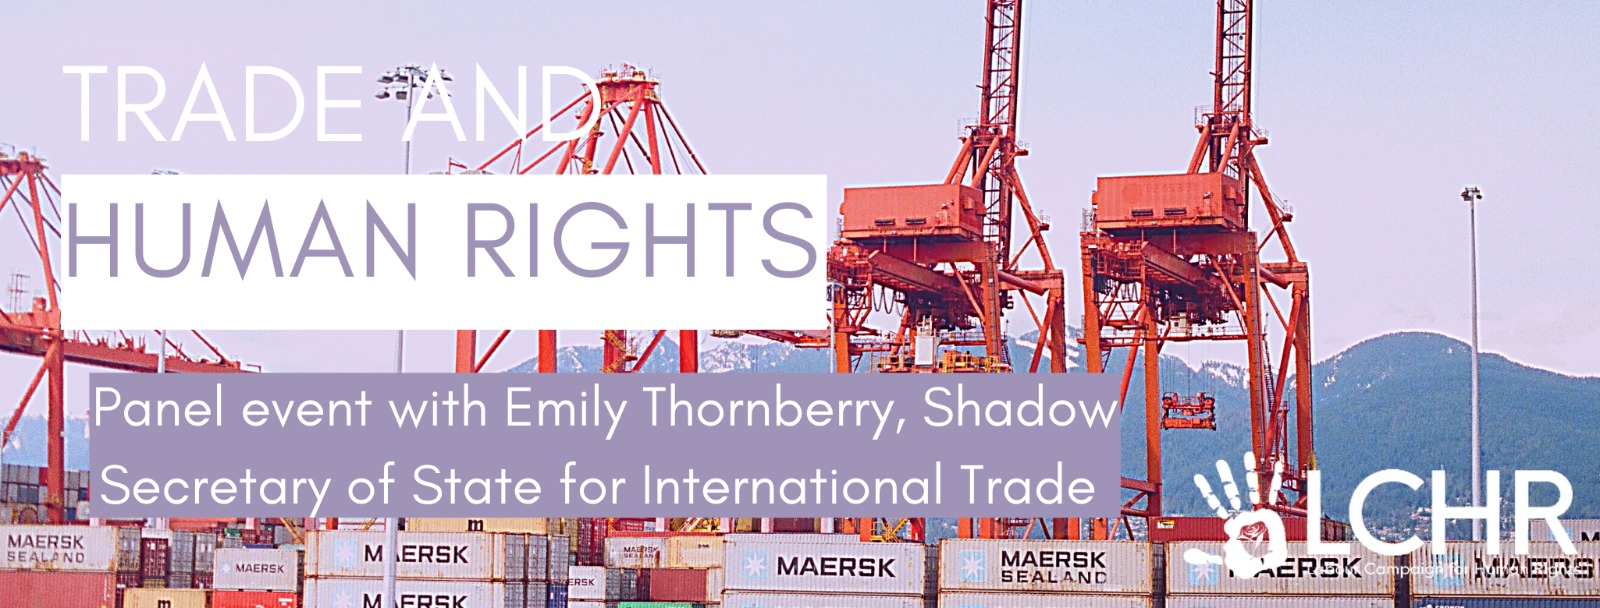 Trade Deals and Human Rights with Emily Thornberry MP